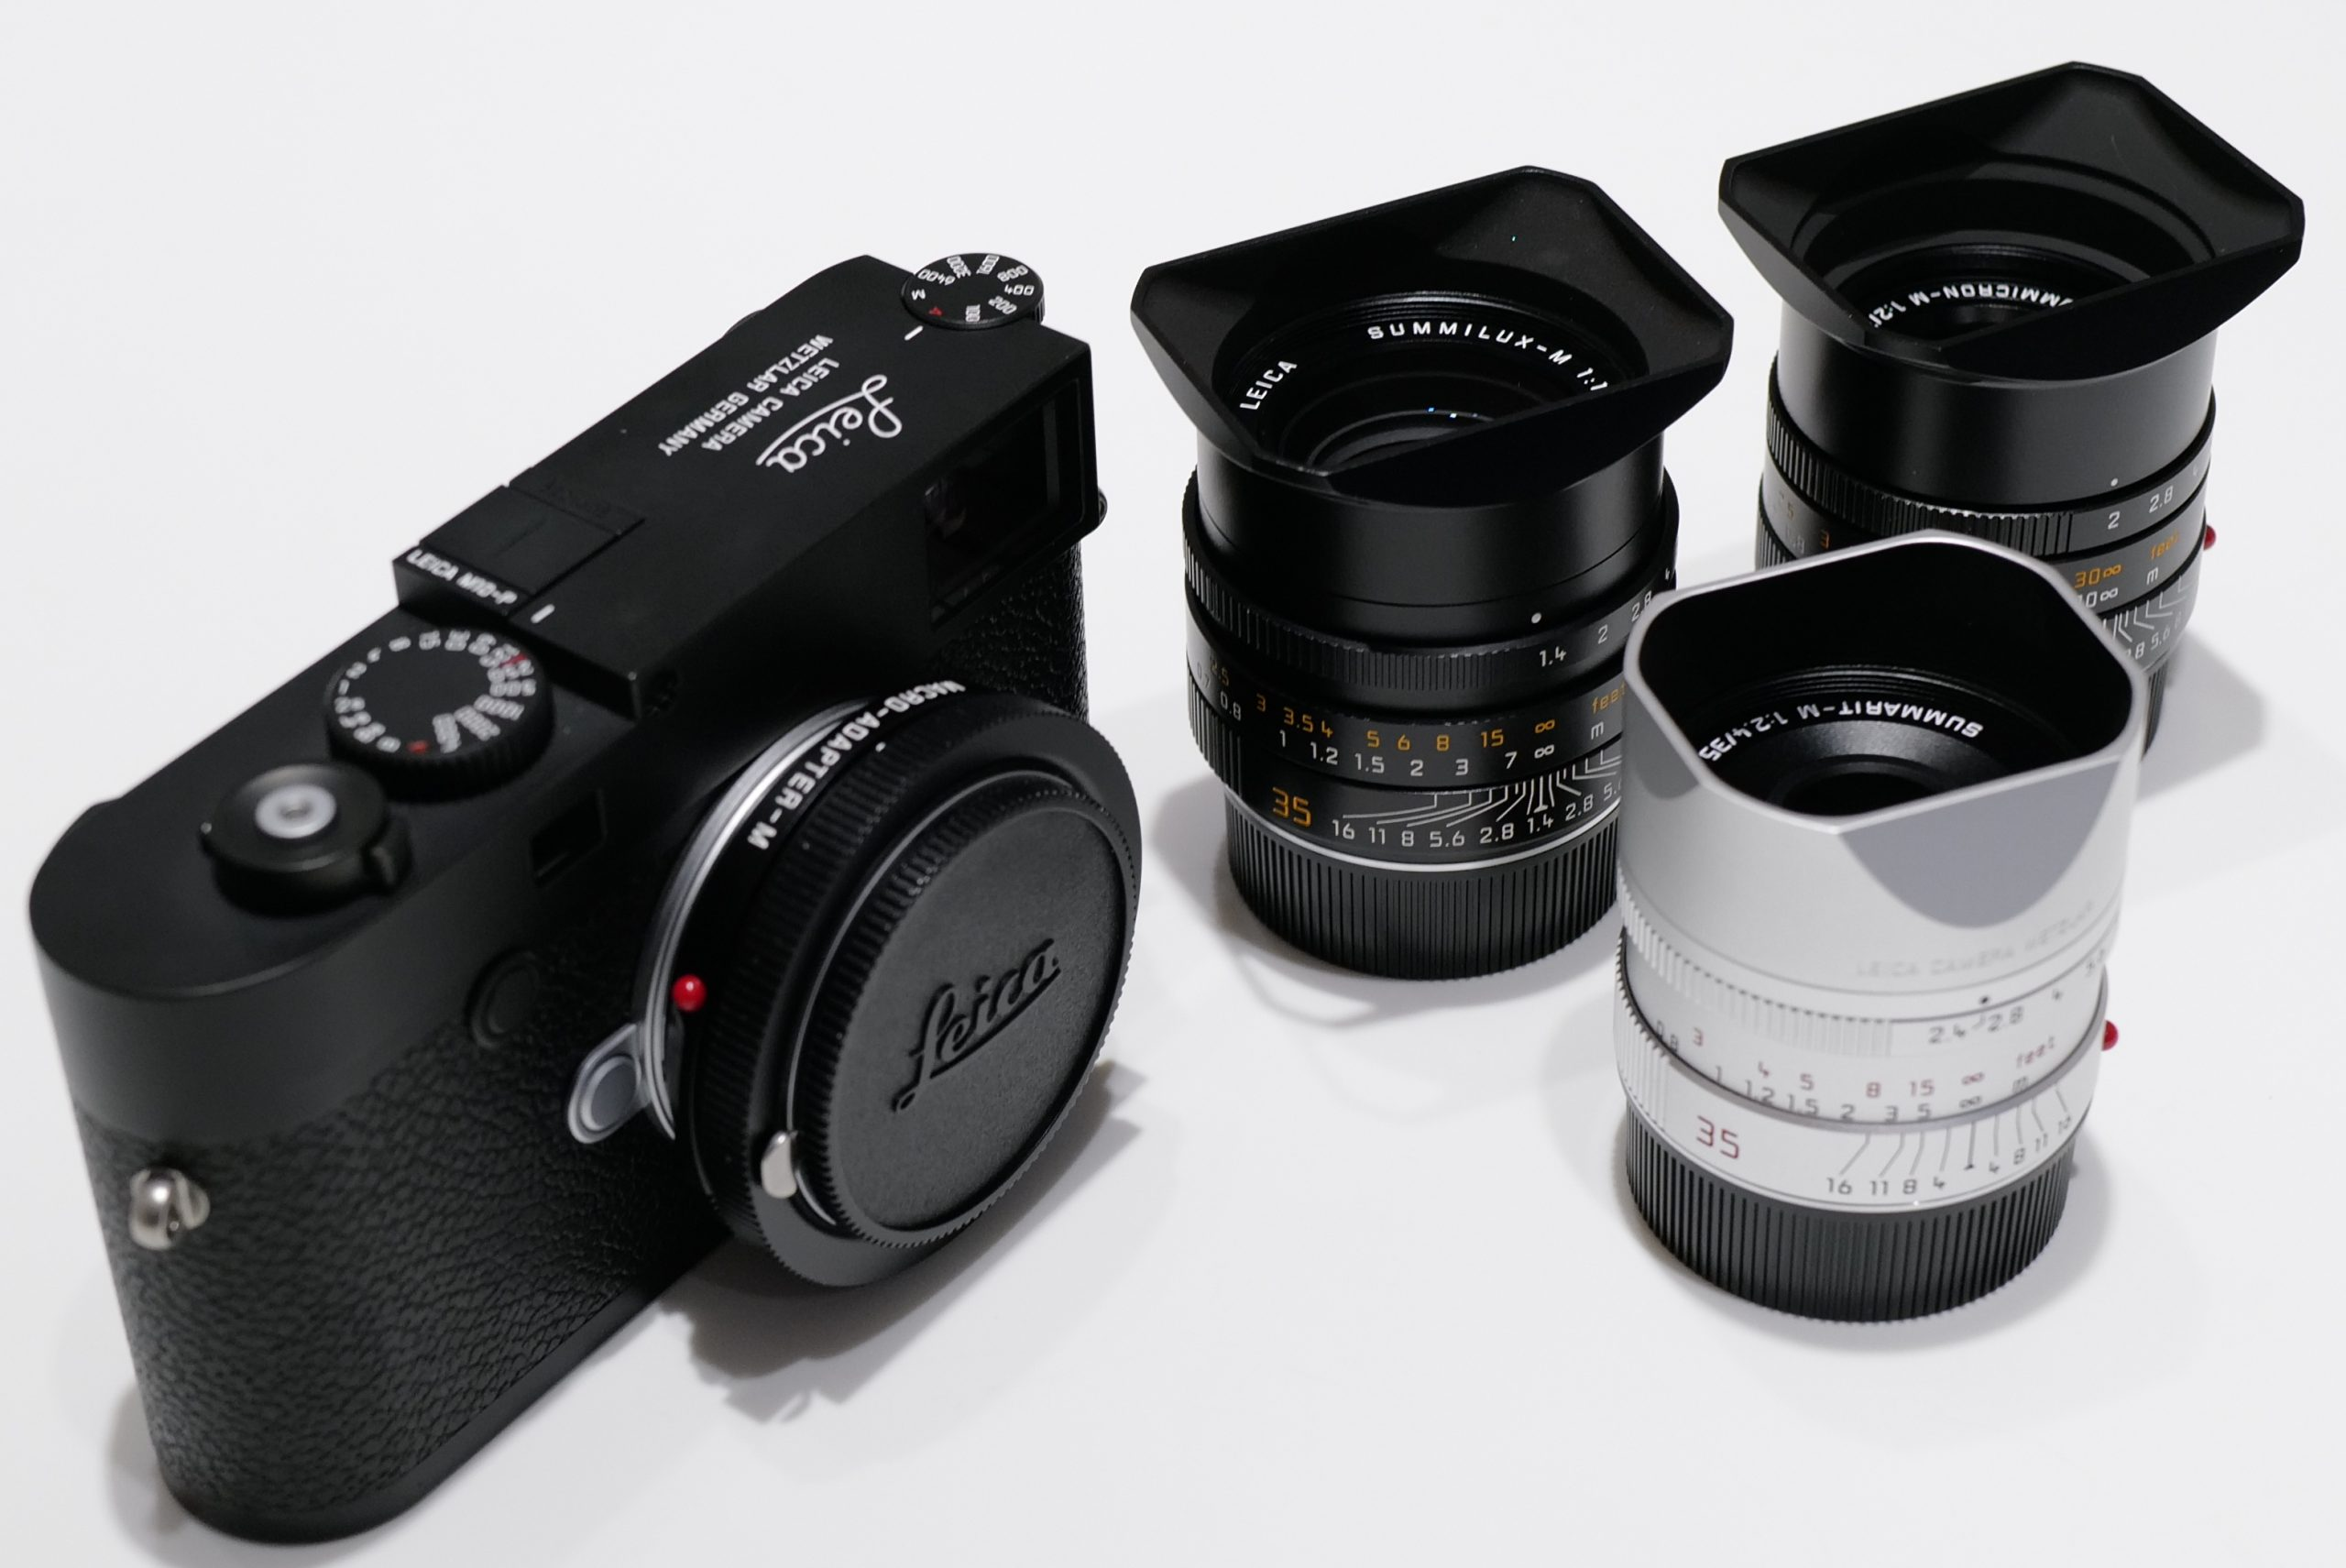 【Leica】How to Digital Leica マクロアダプターM Typ240編 その④